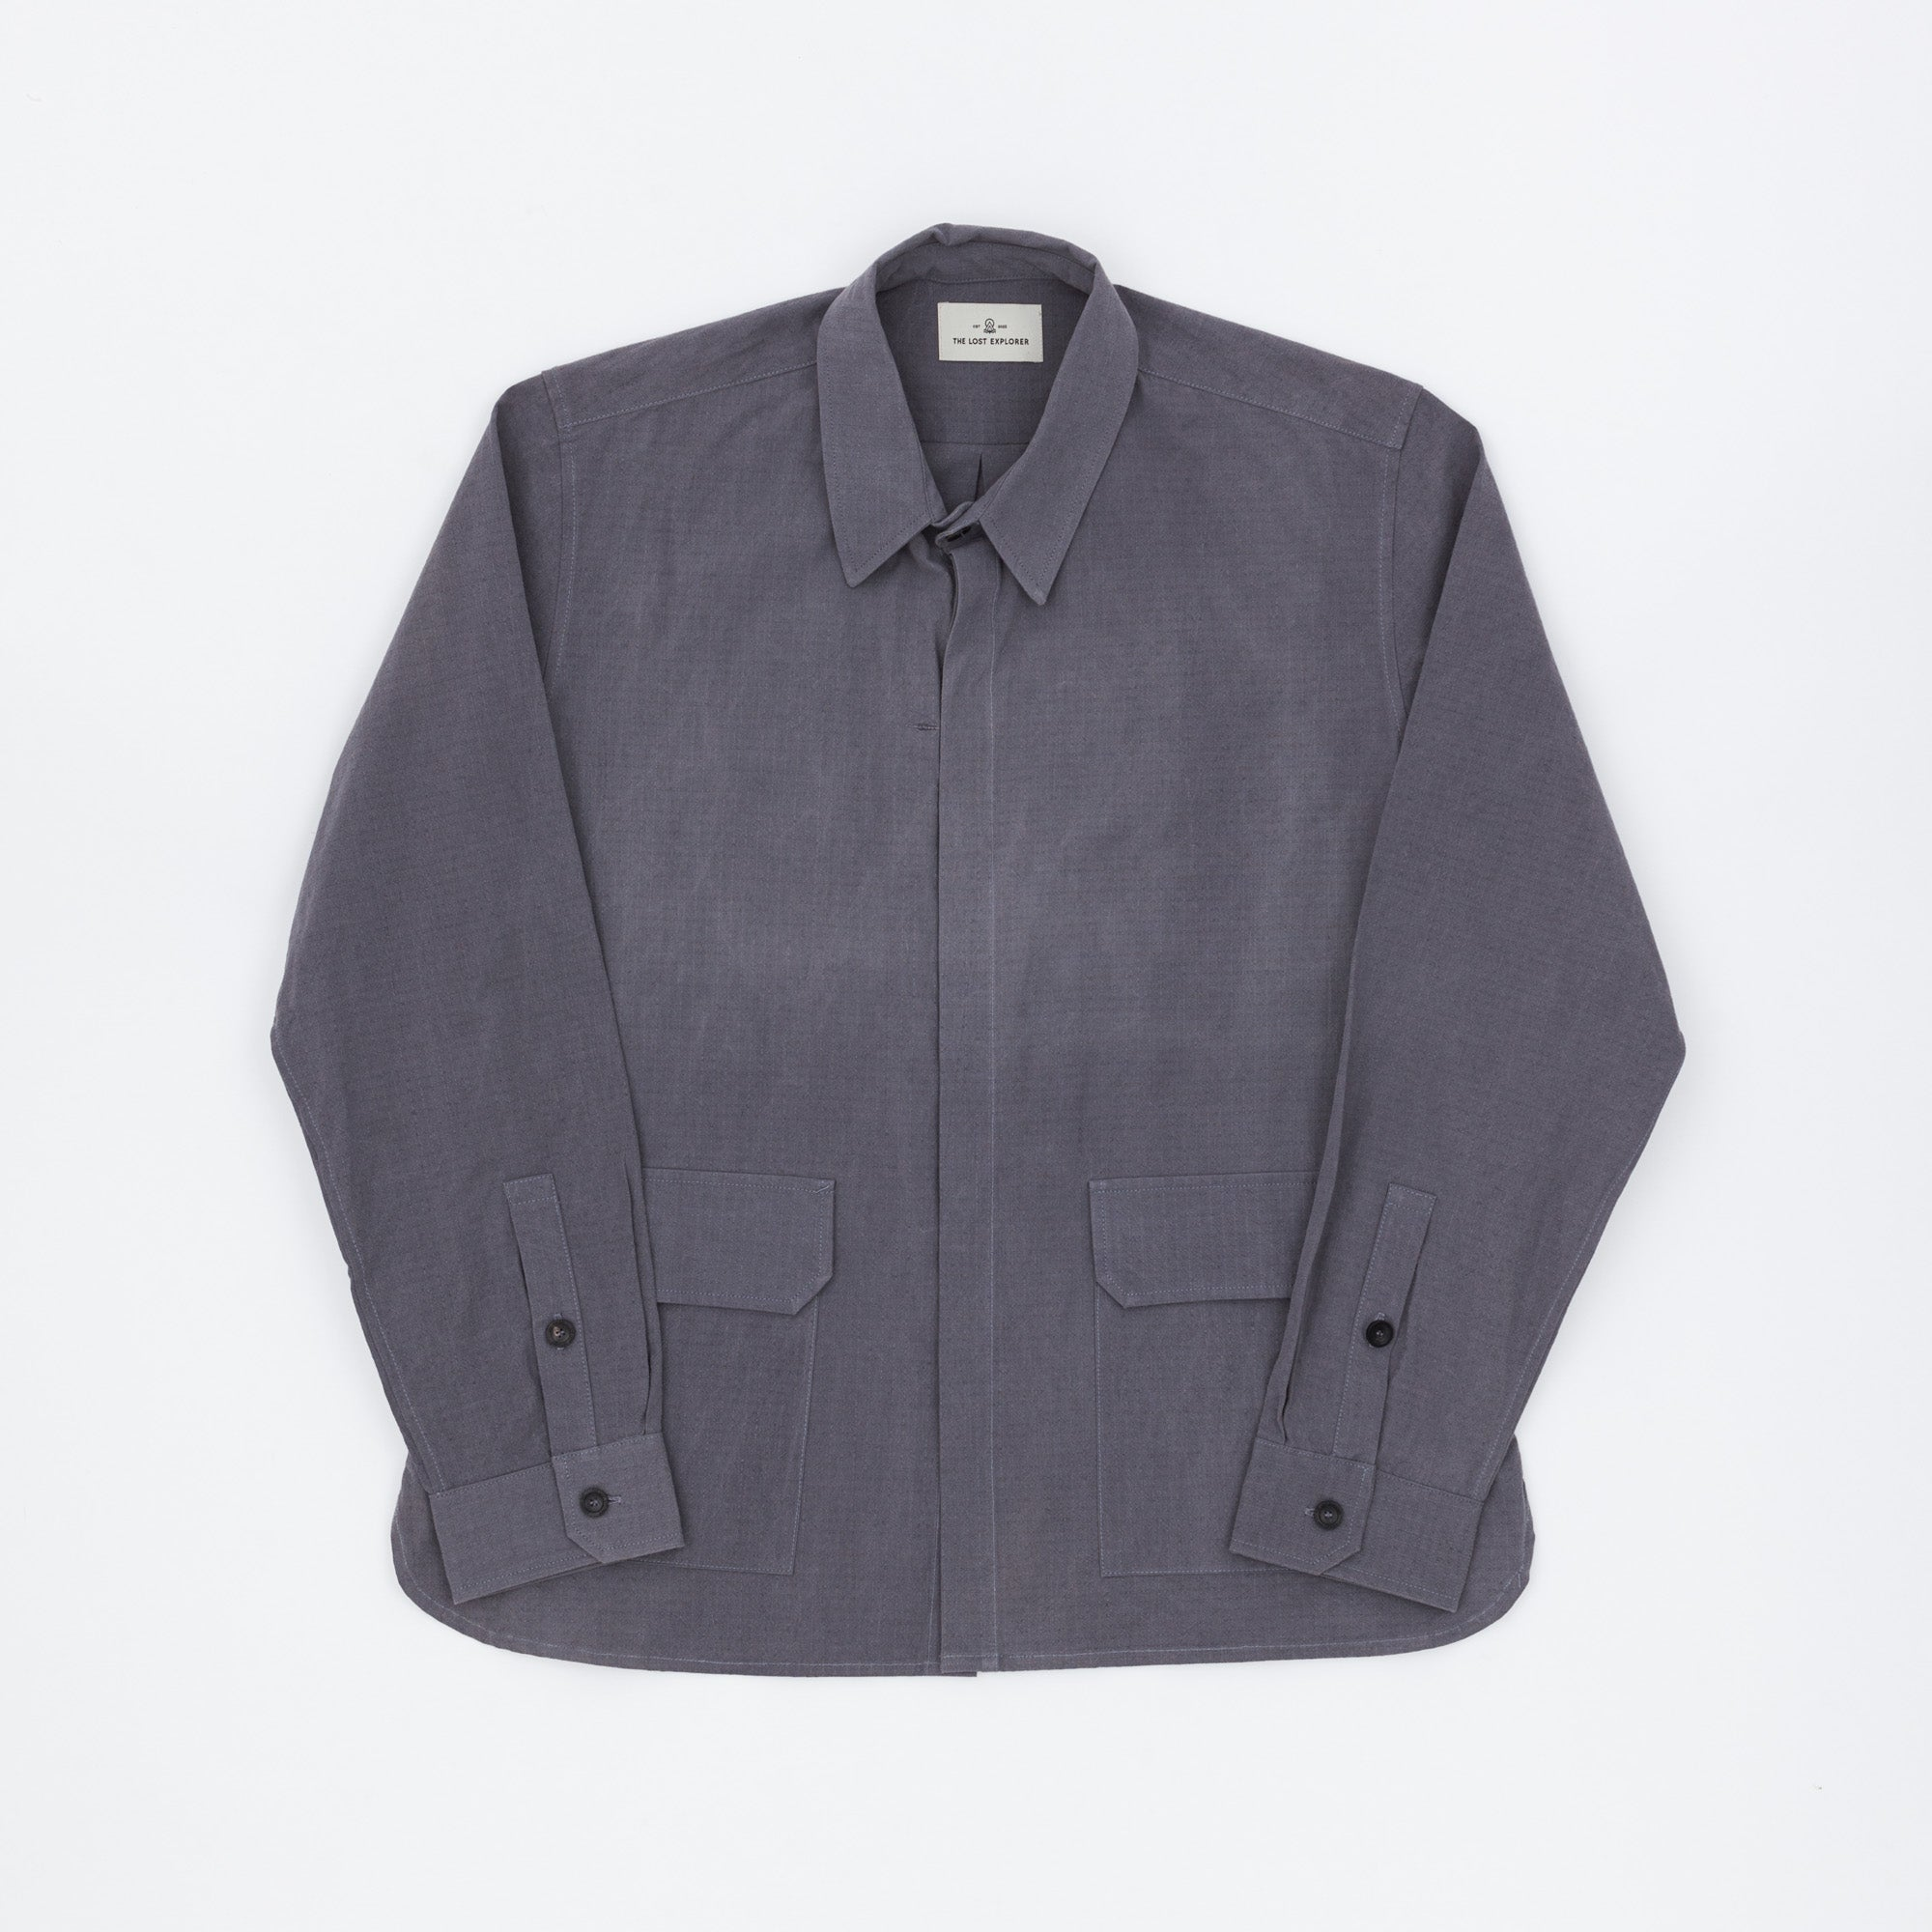 SLOTH JACKET- LARGE COTTON RIPSTOP